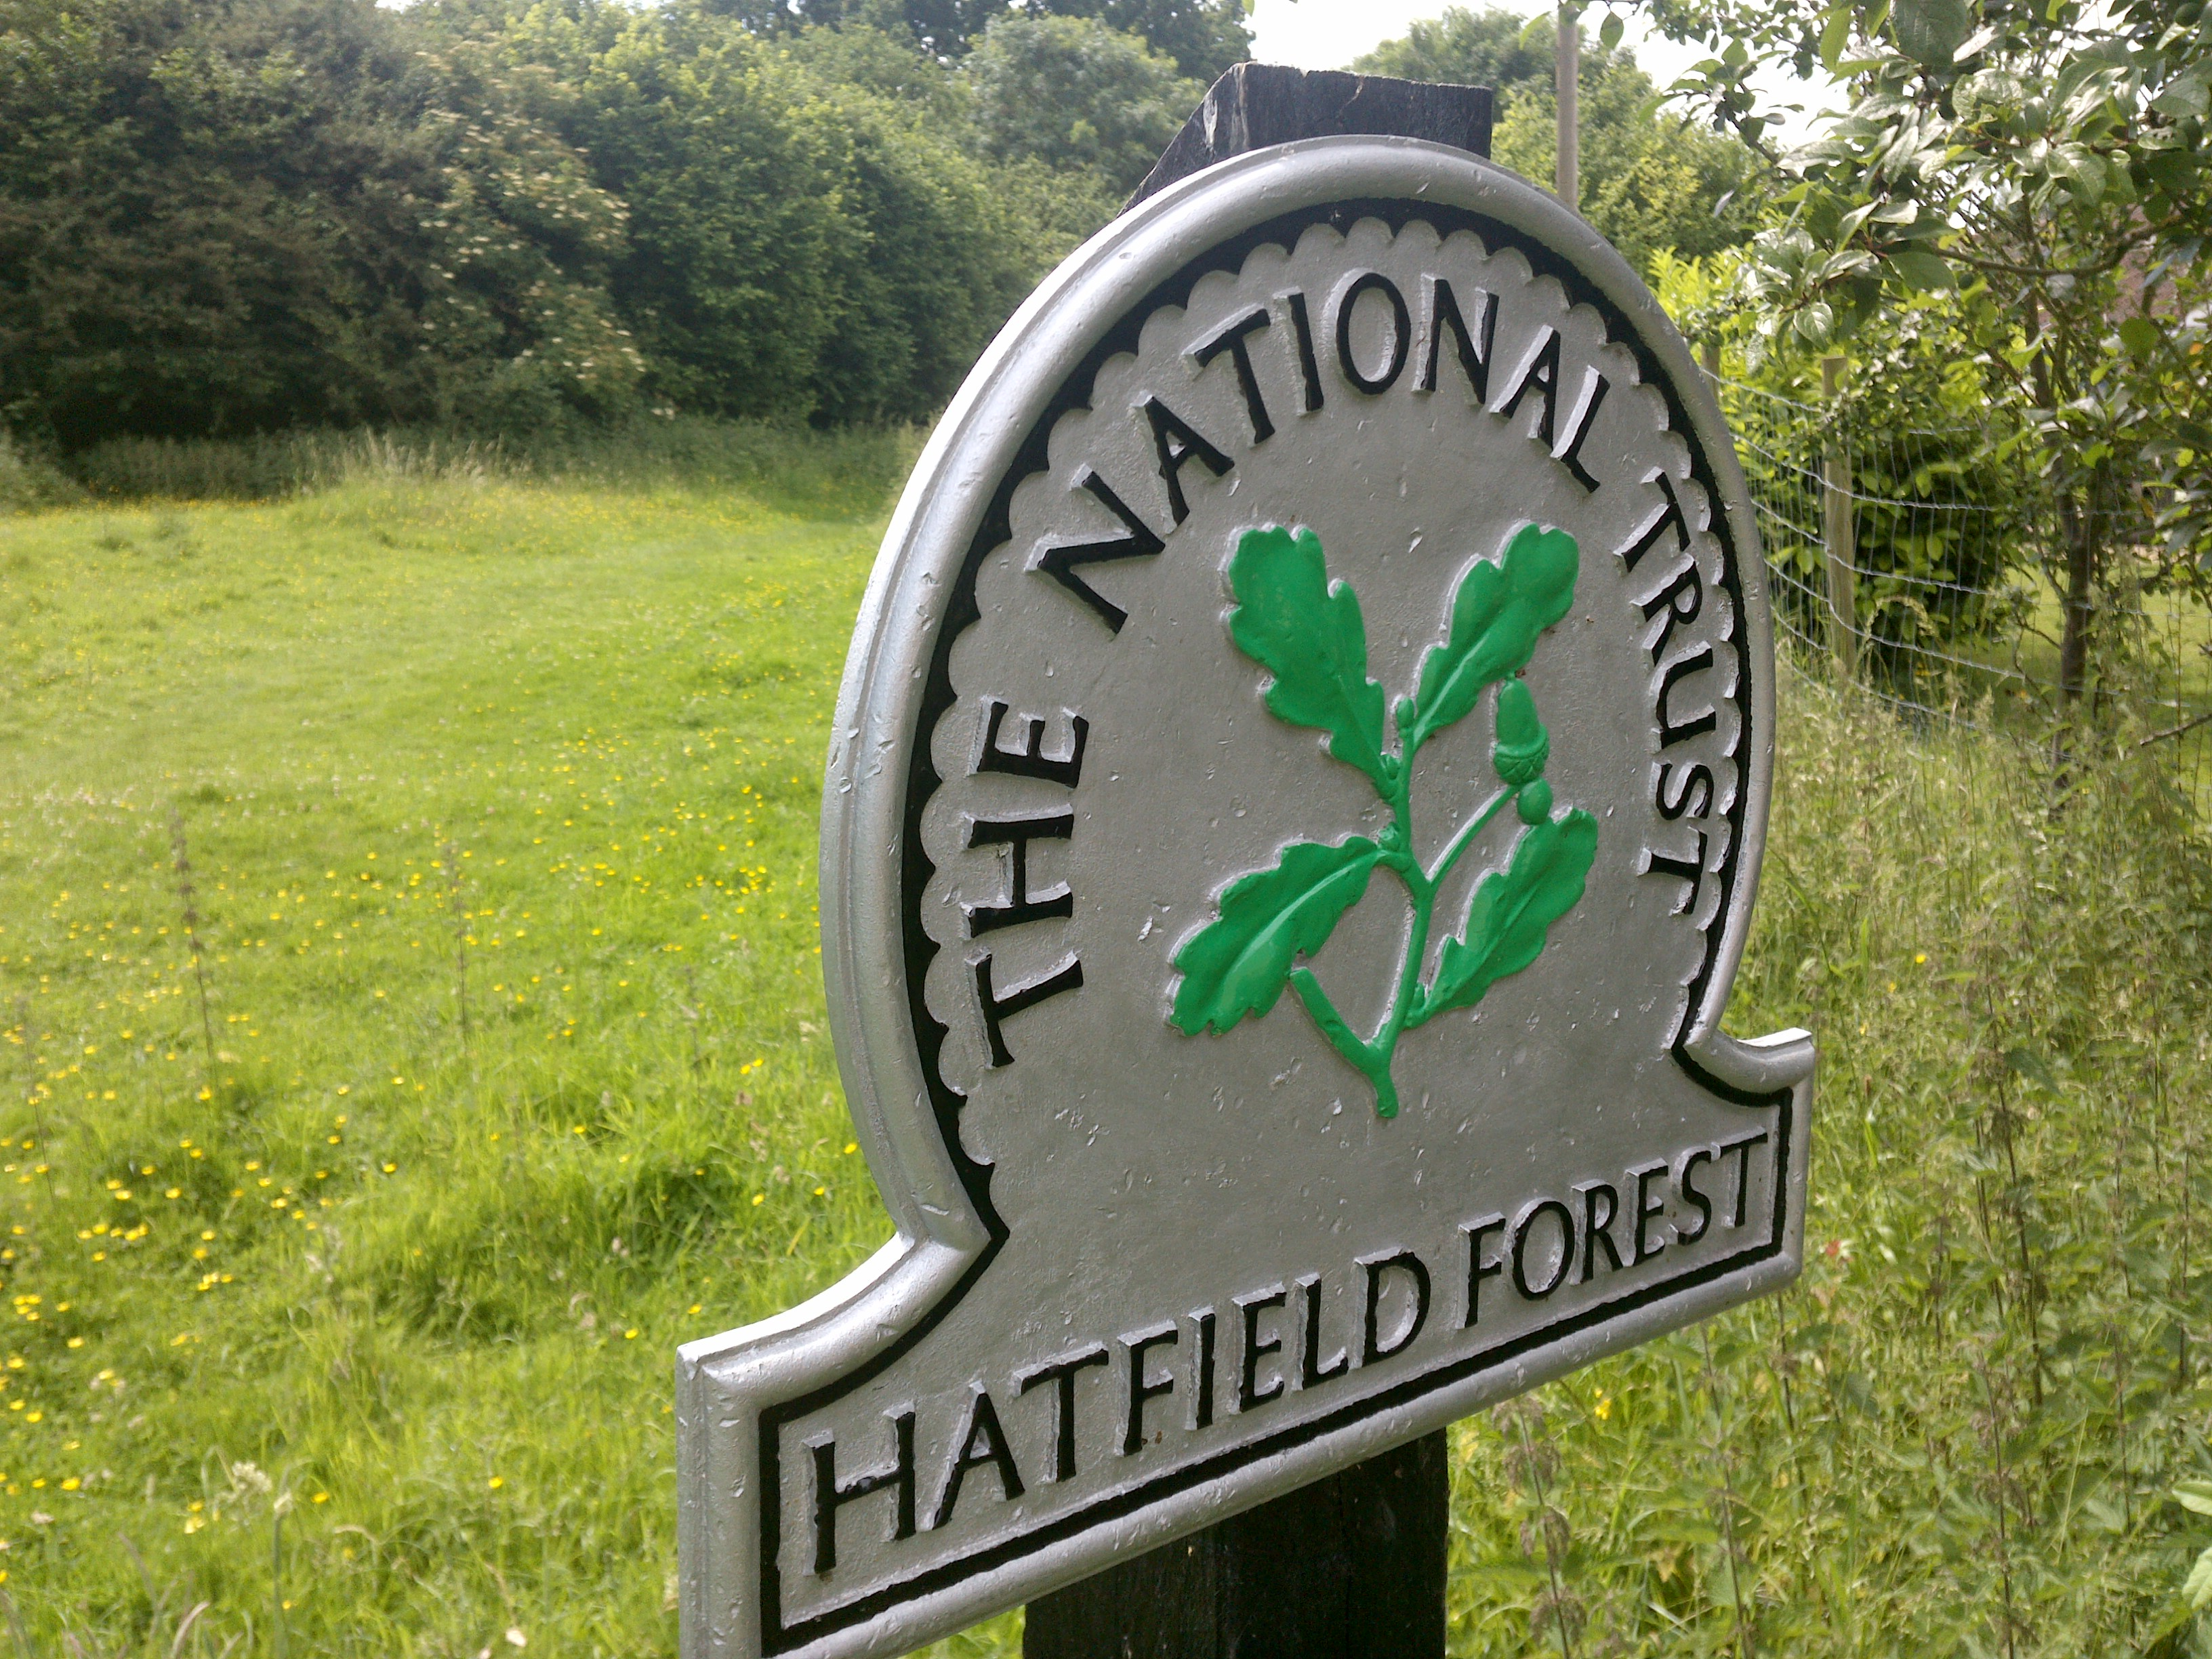 Hatfield Forest - Essex